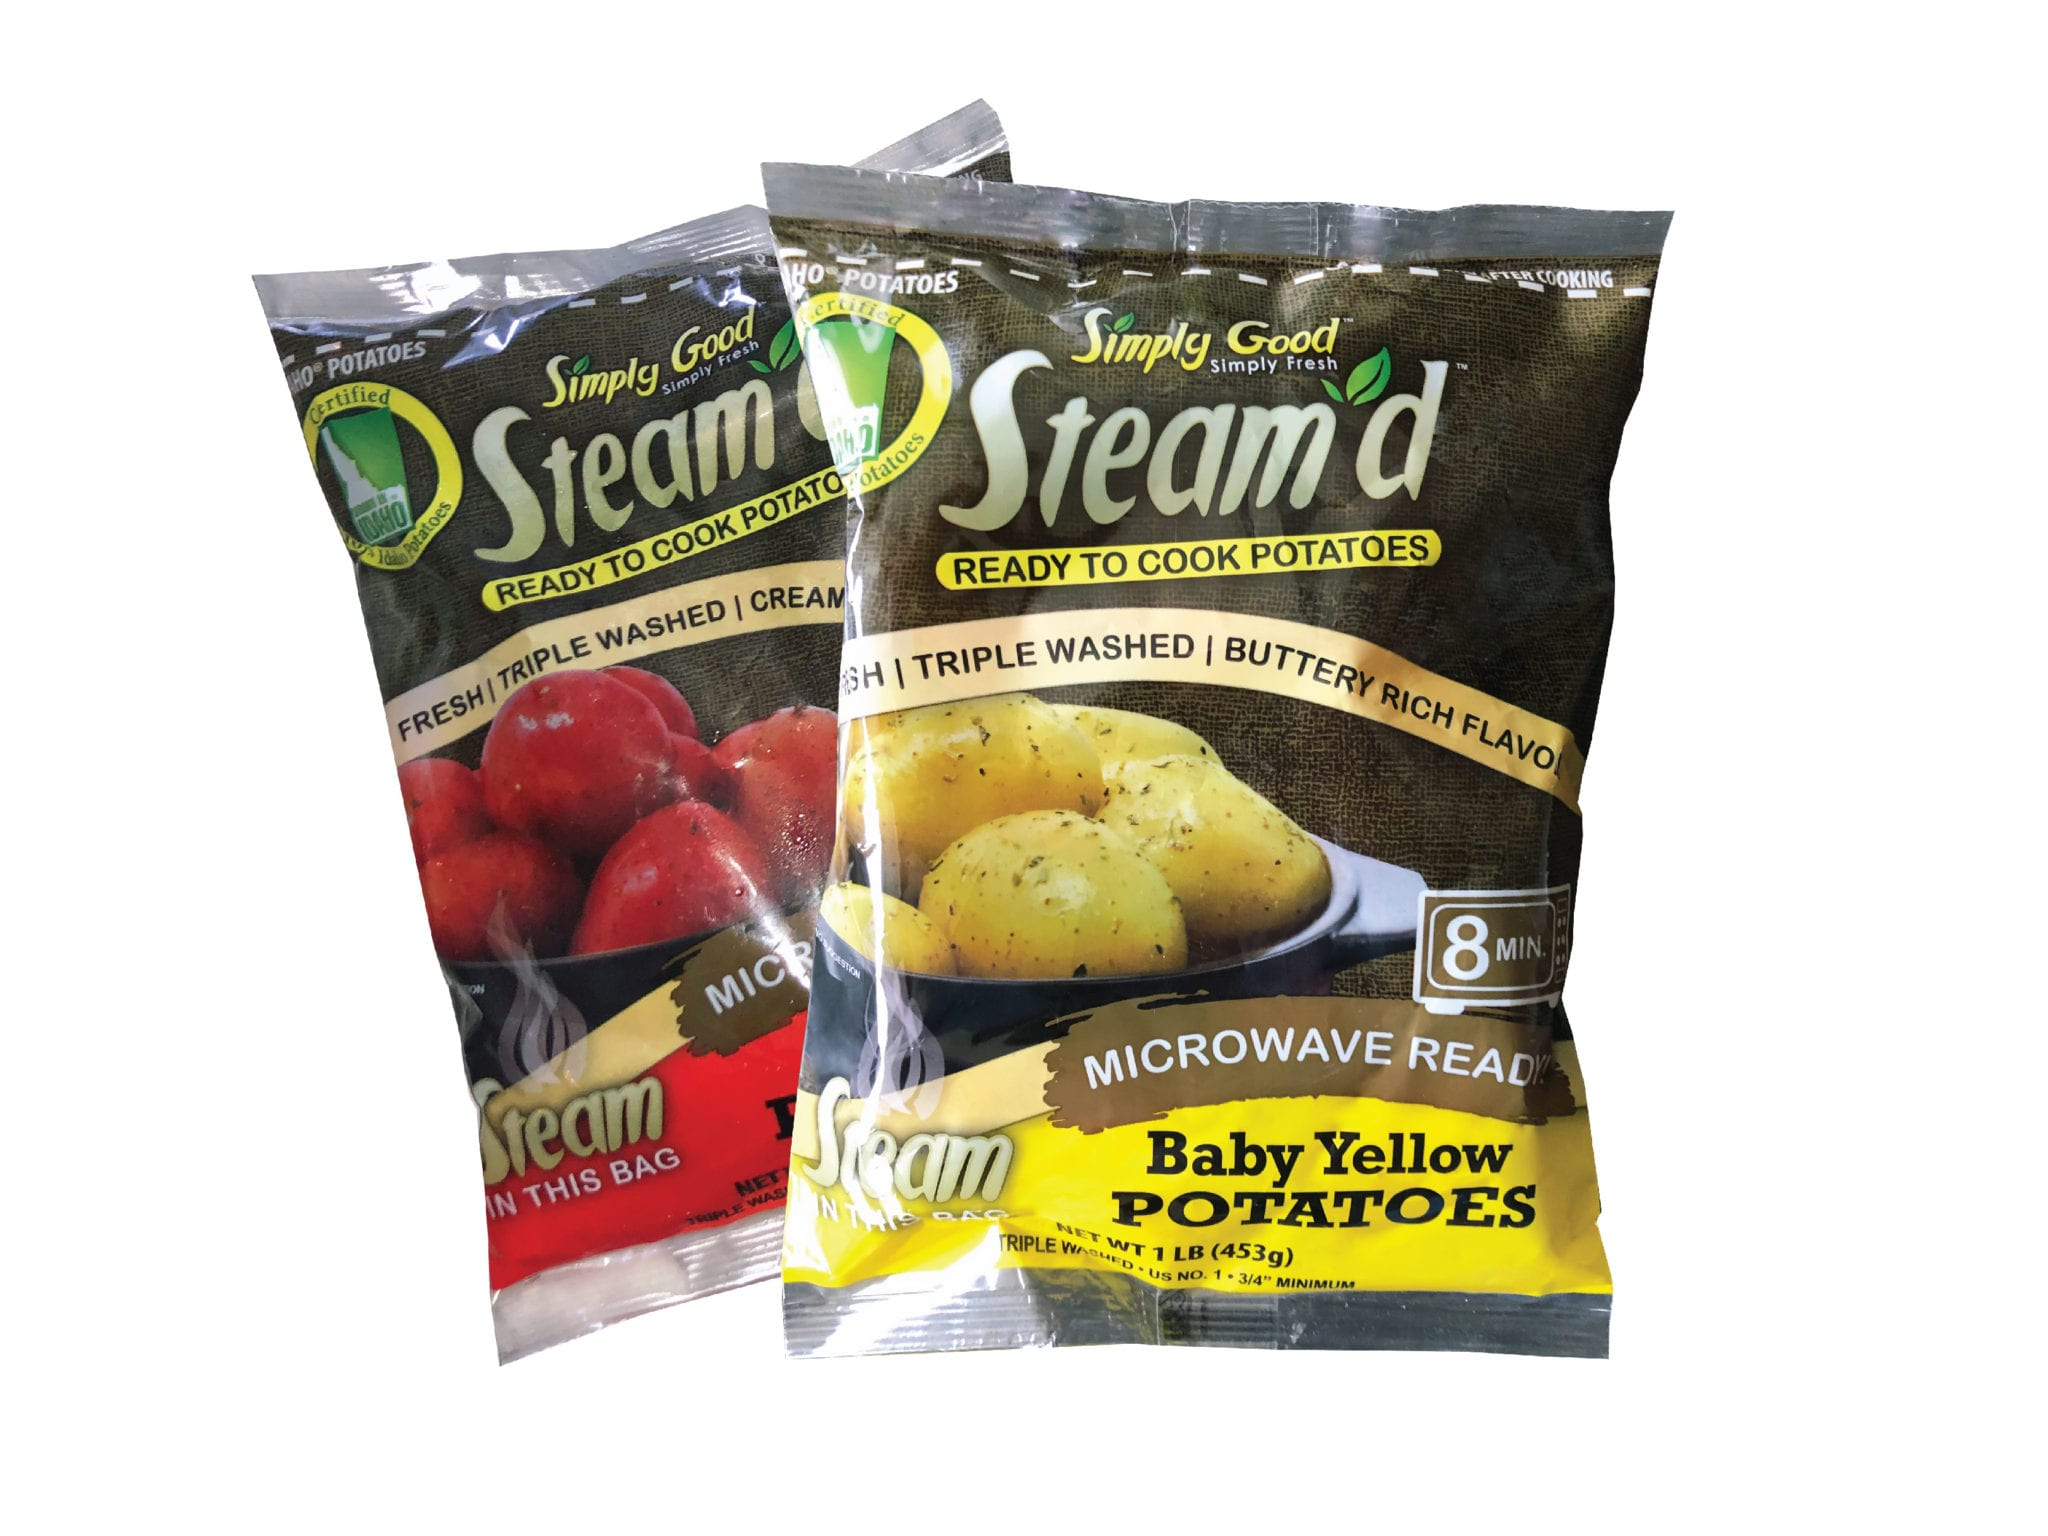 Steam'd Ready to Cook Potatoes